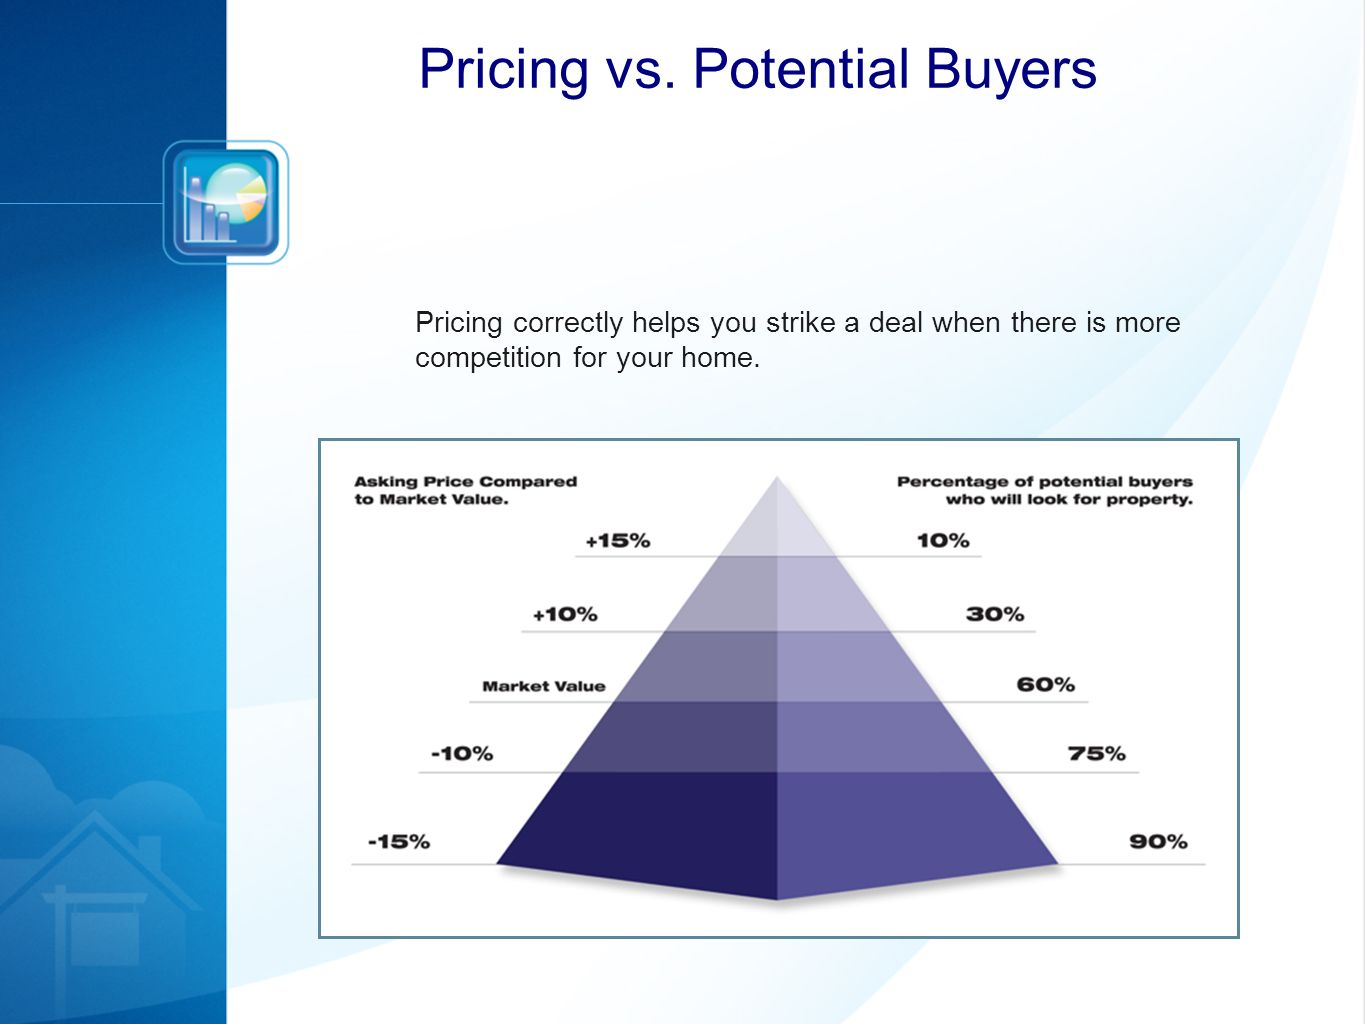 Pricing correctly helps you strike a deal when there is more competition for your home. Pricing vs. Potential Buyers